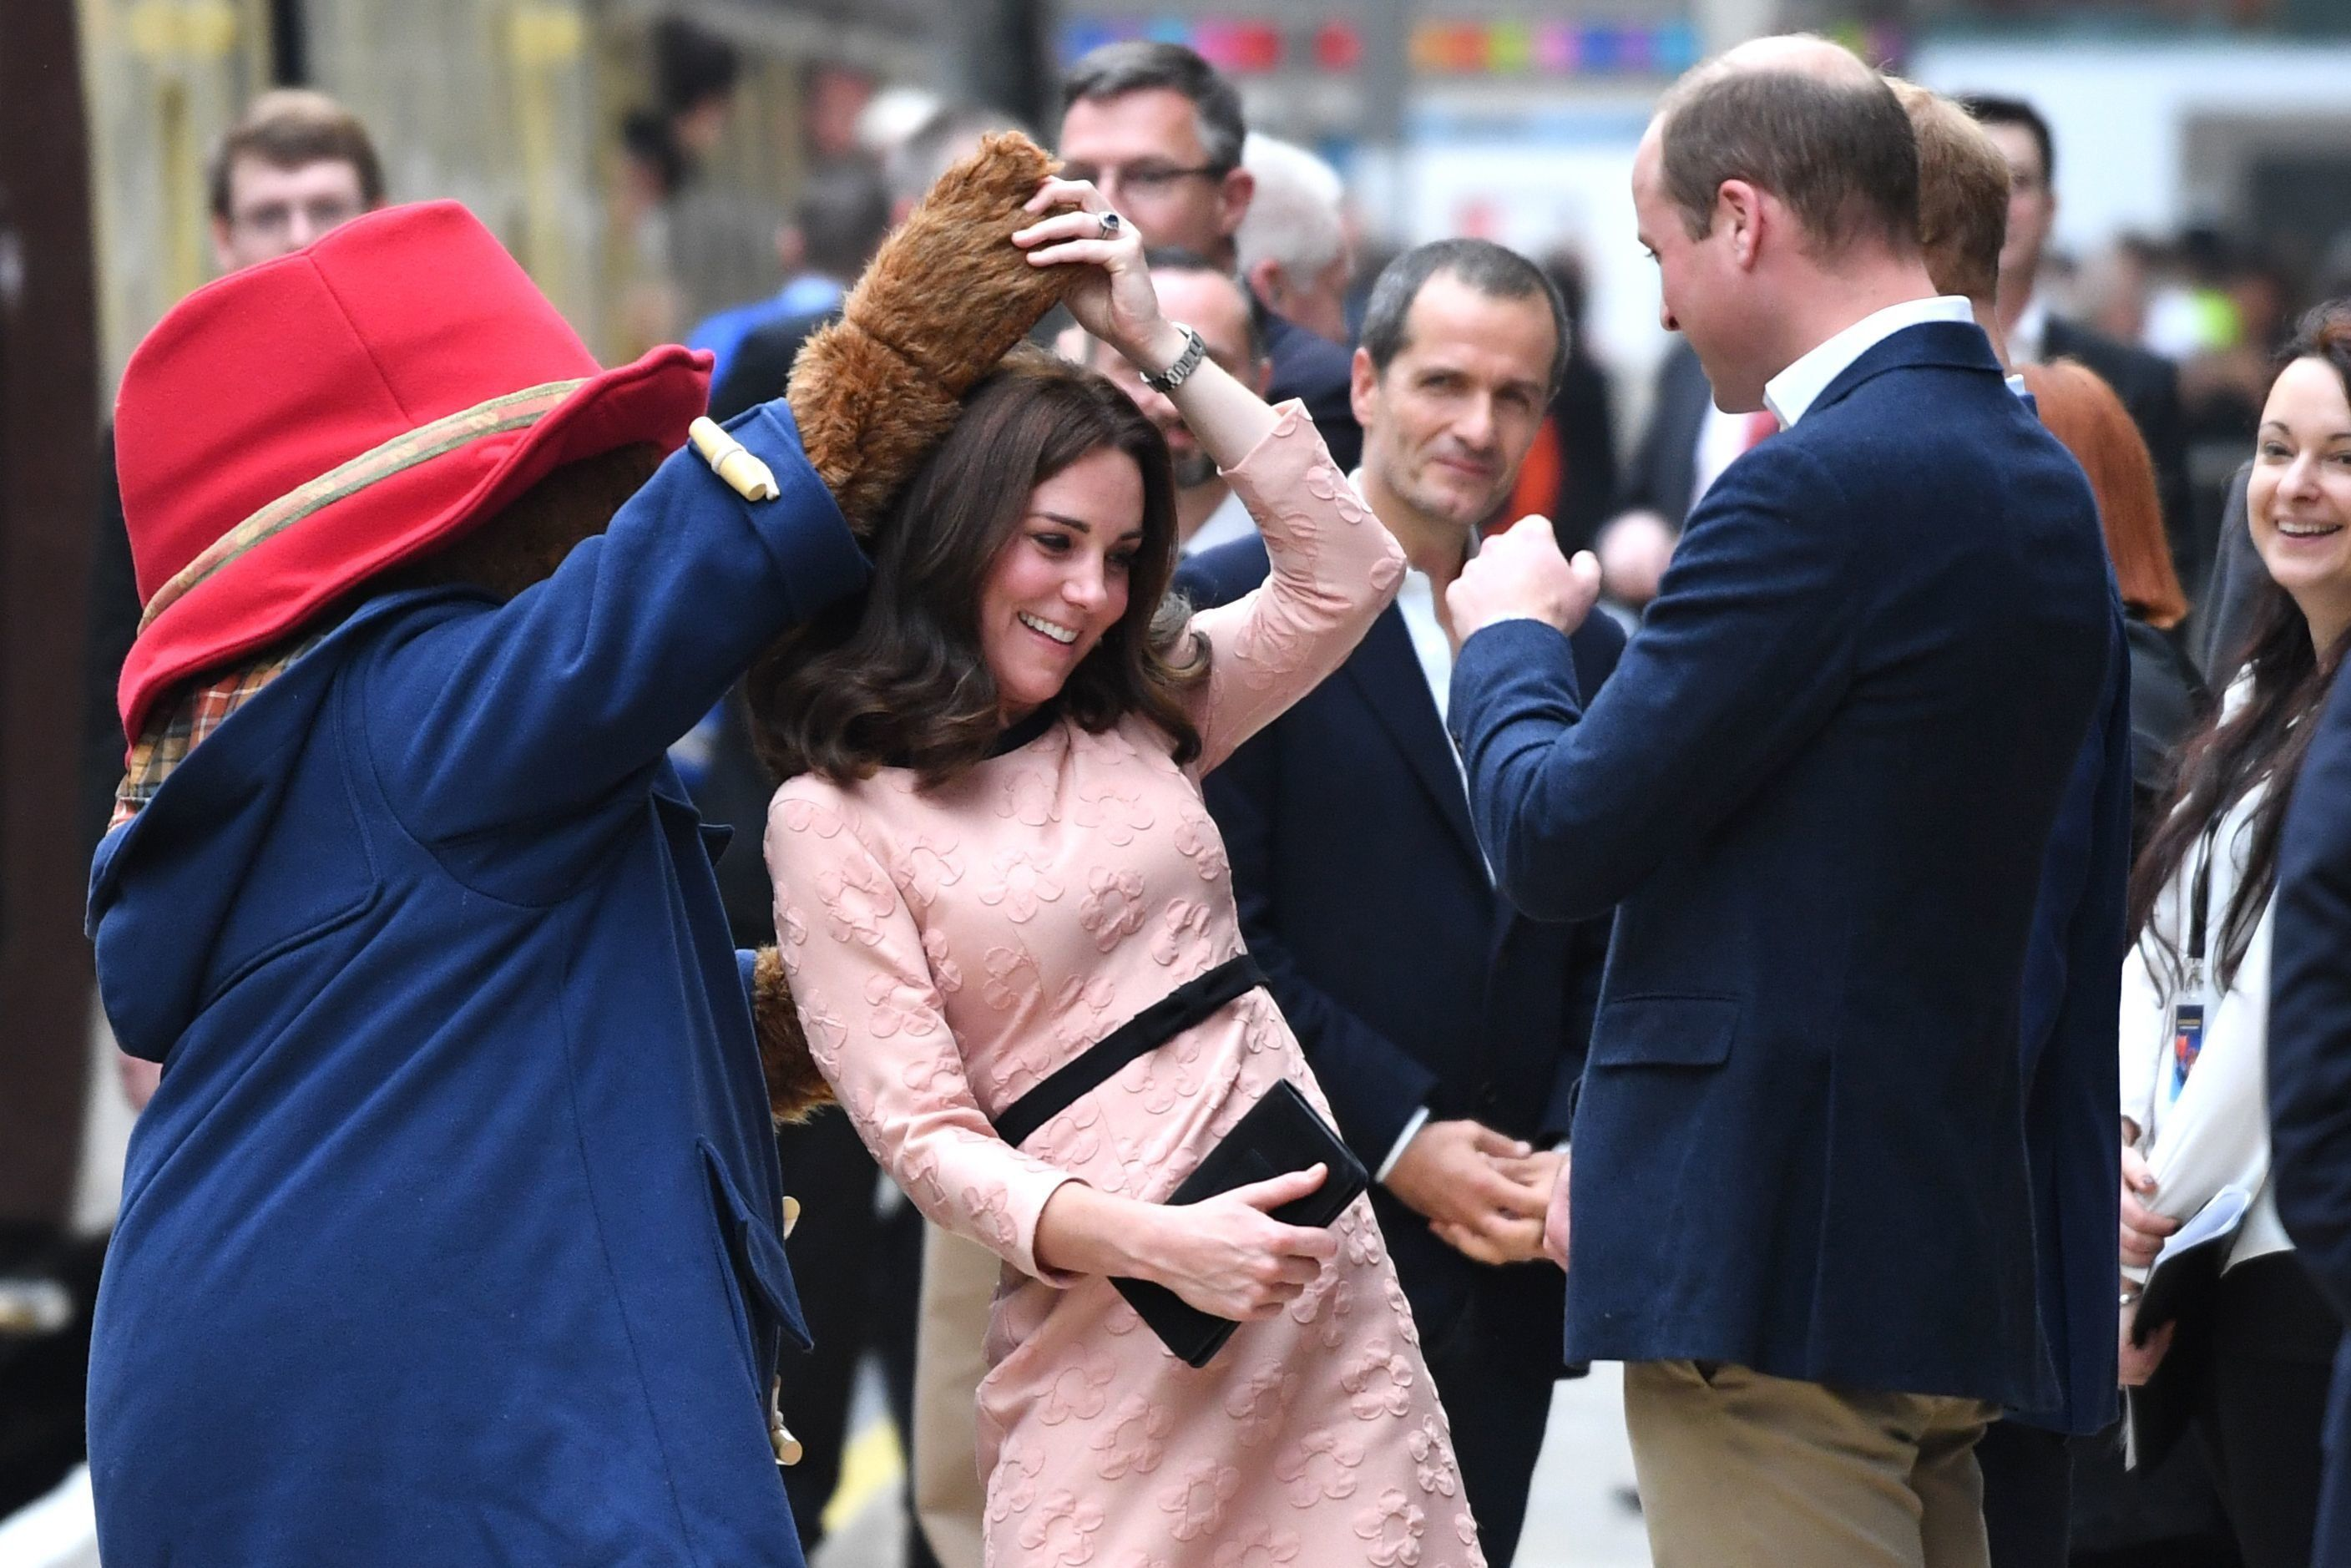 Duchess Of Cambridge Dances With Paddington Bear In Latest Public